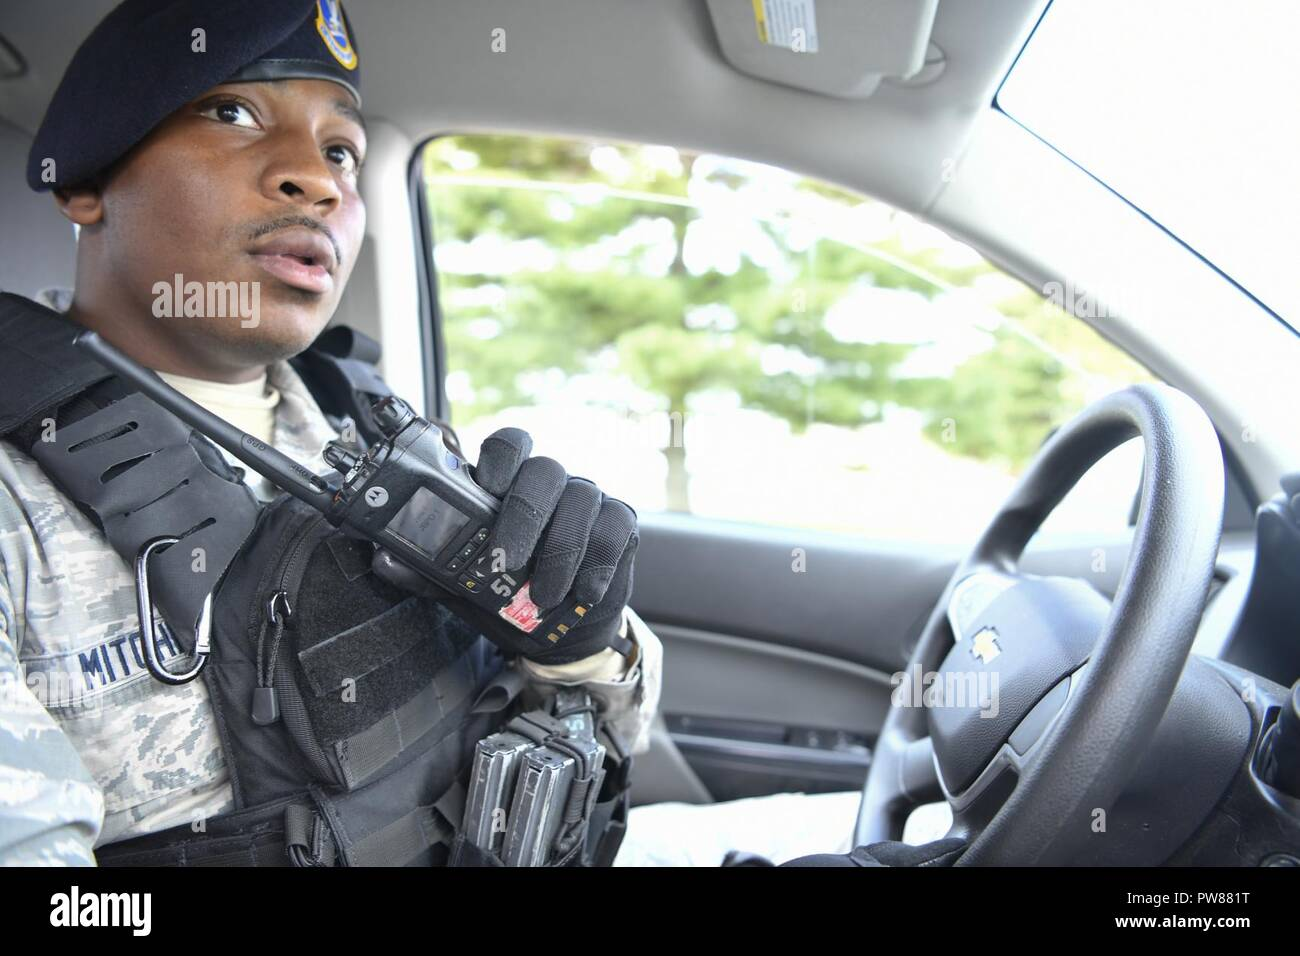 87th Security Forces Law Enforcement Officer Responds To The Call Of A Gate Runner On Joint Base McGuire Dix Lakehurst New Jersey Sept 30 2017